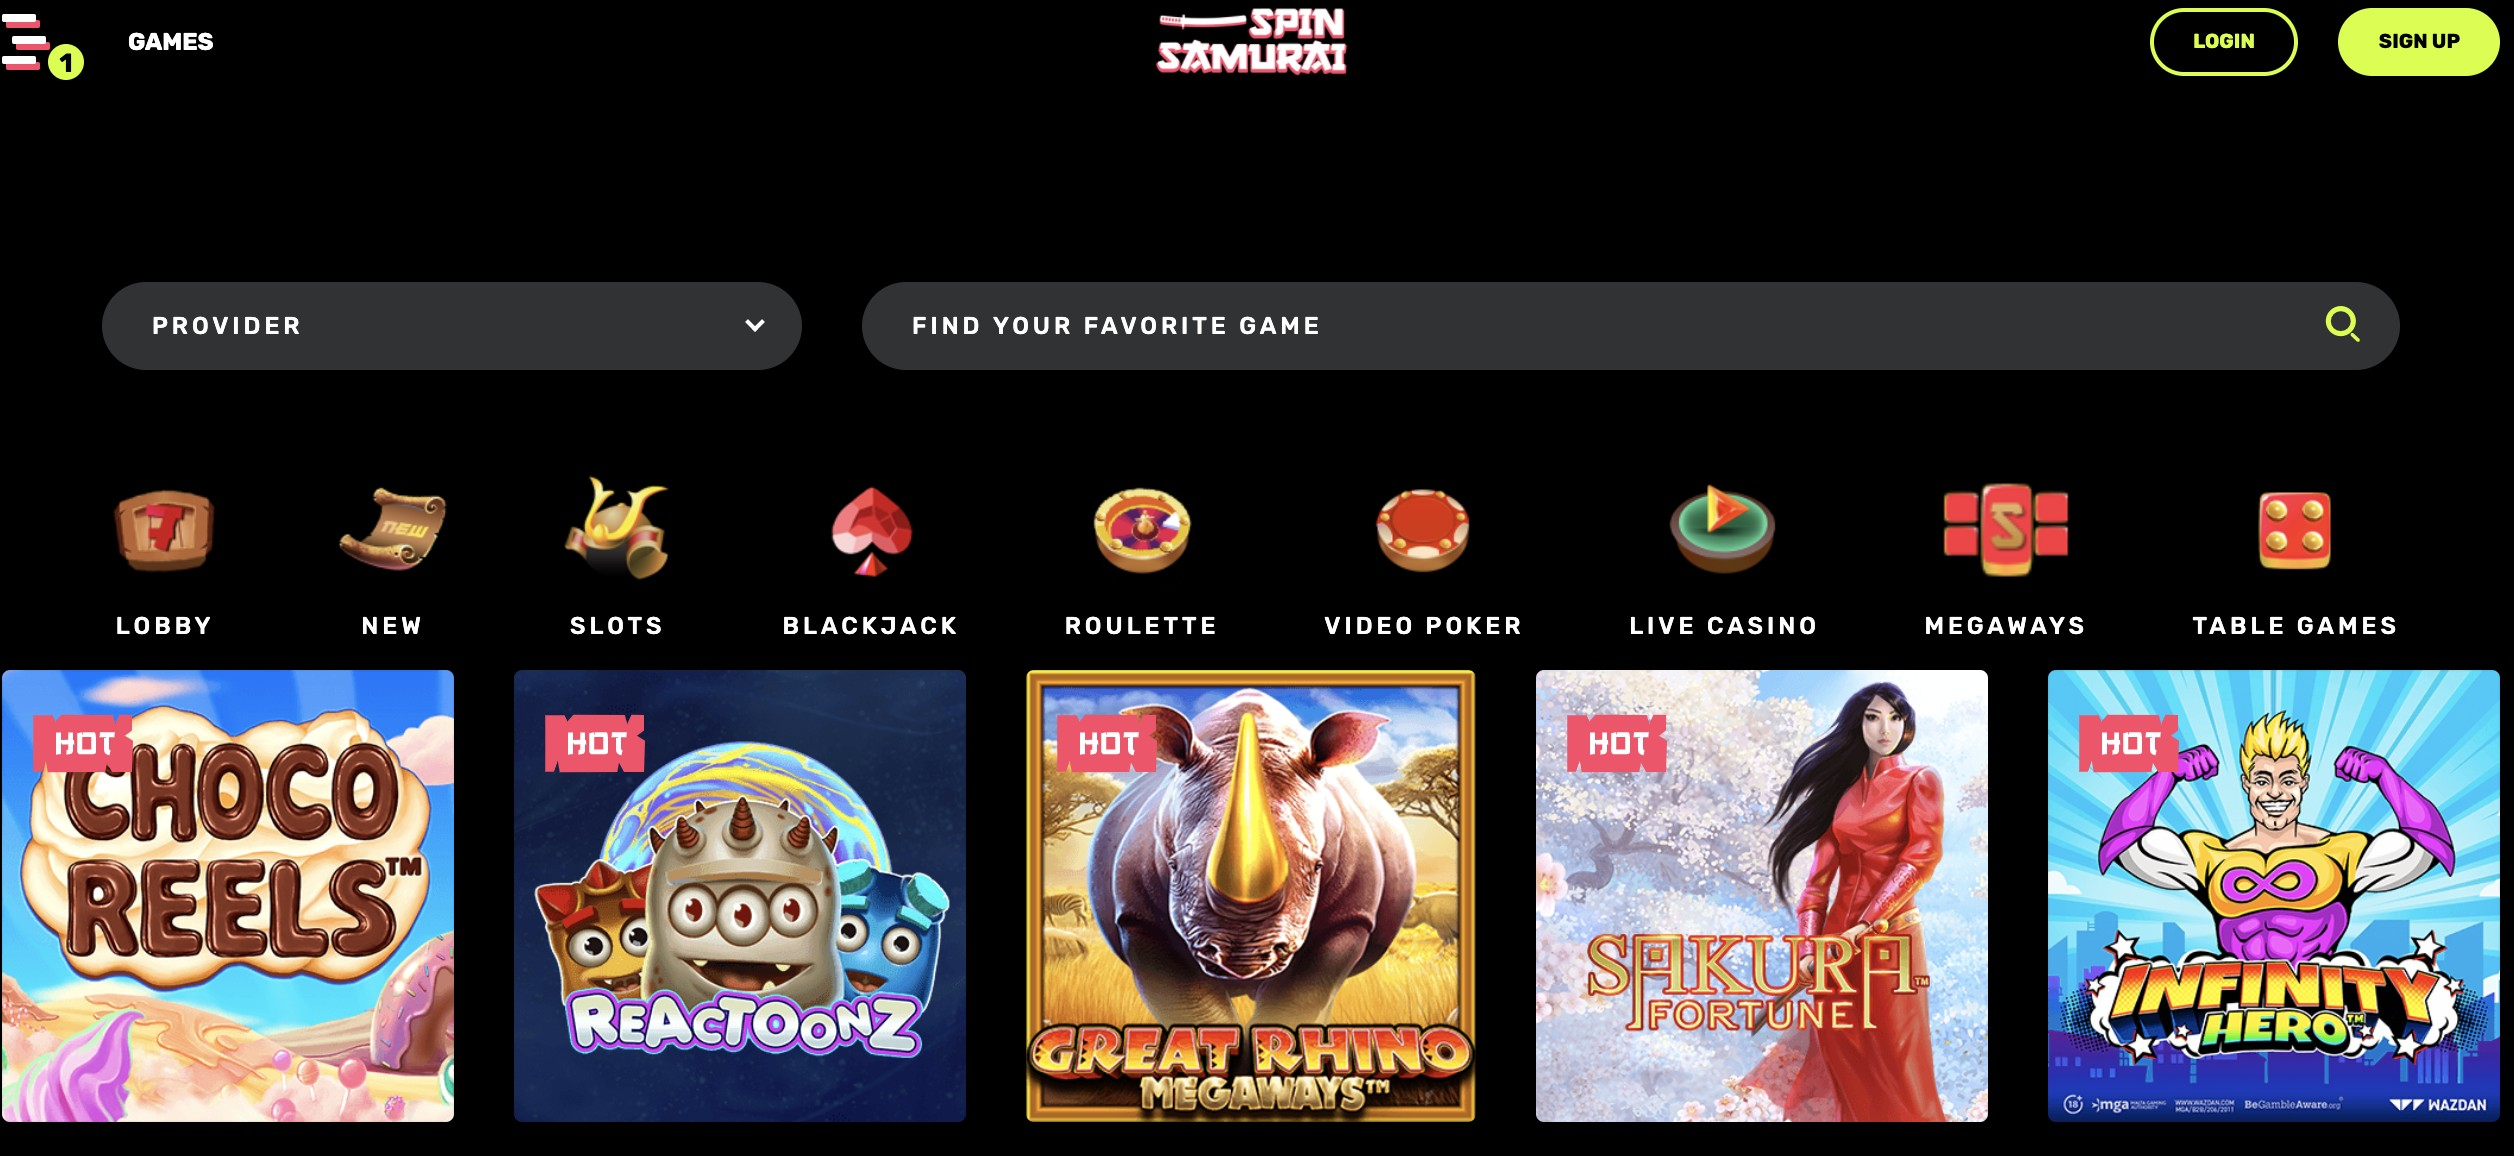 Join Spin Samurai for Top Bonuses and Games